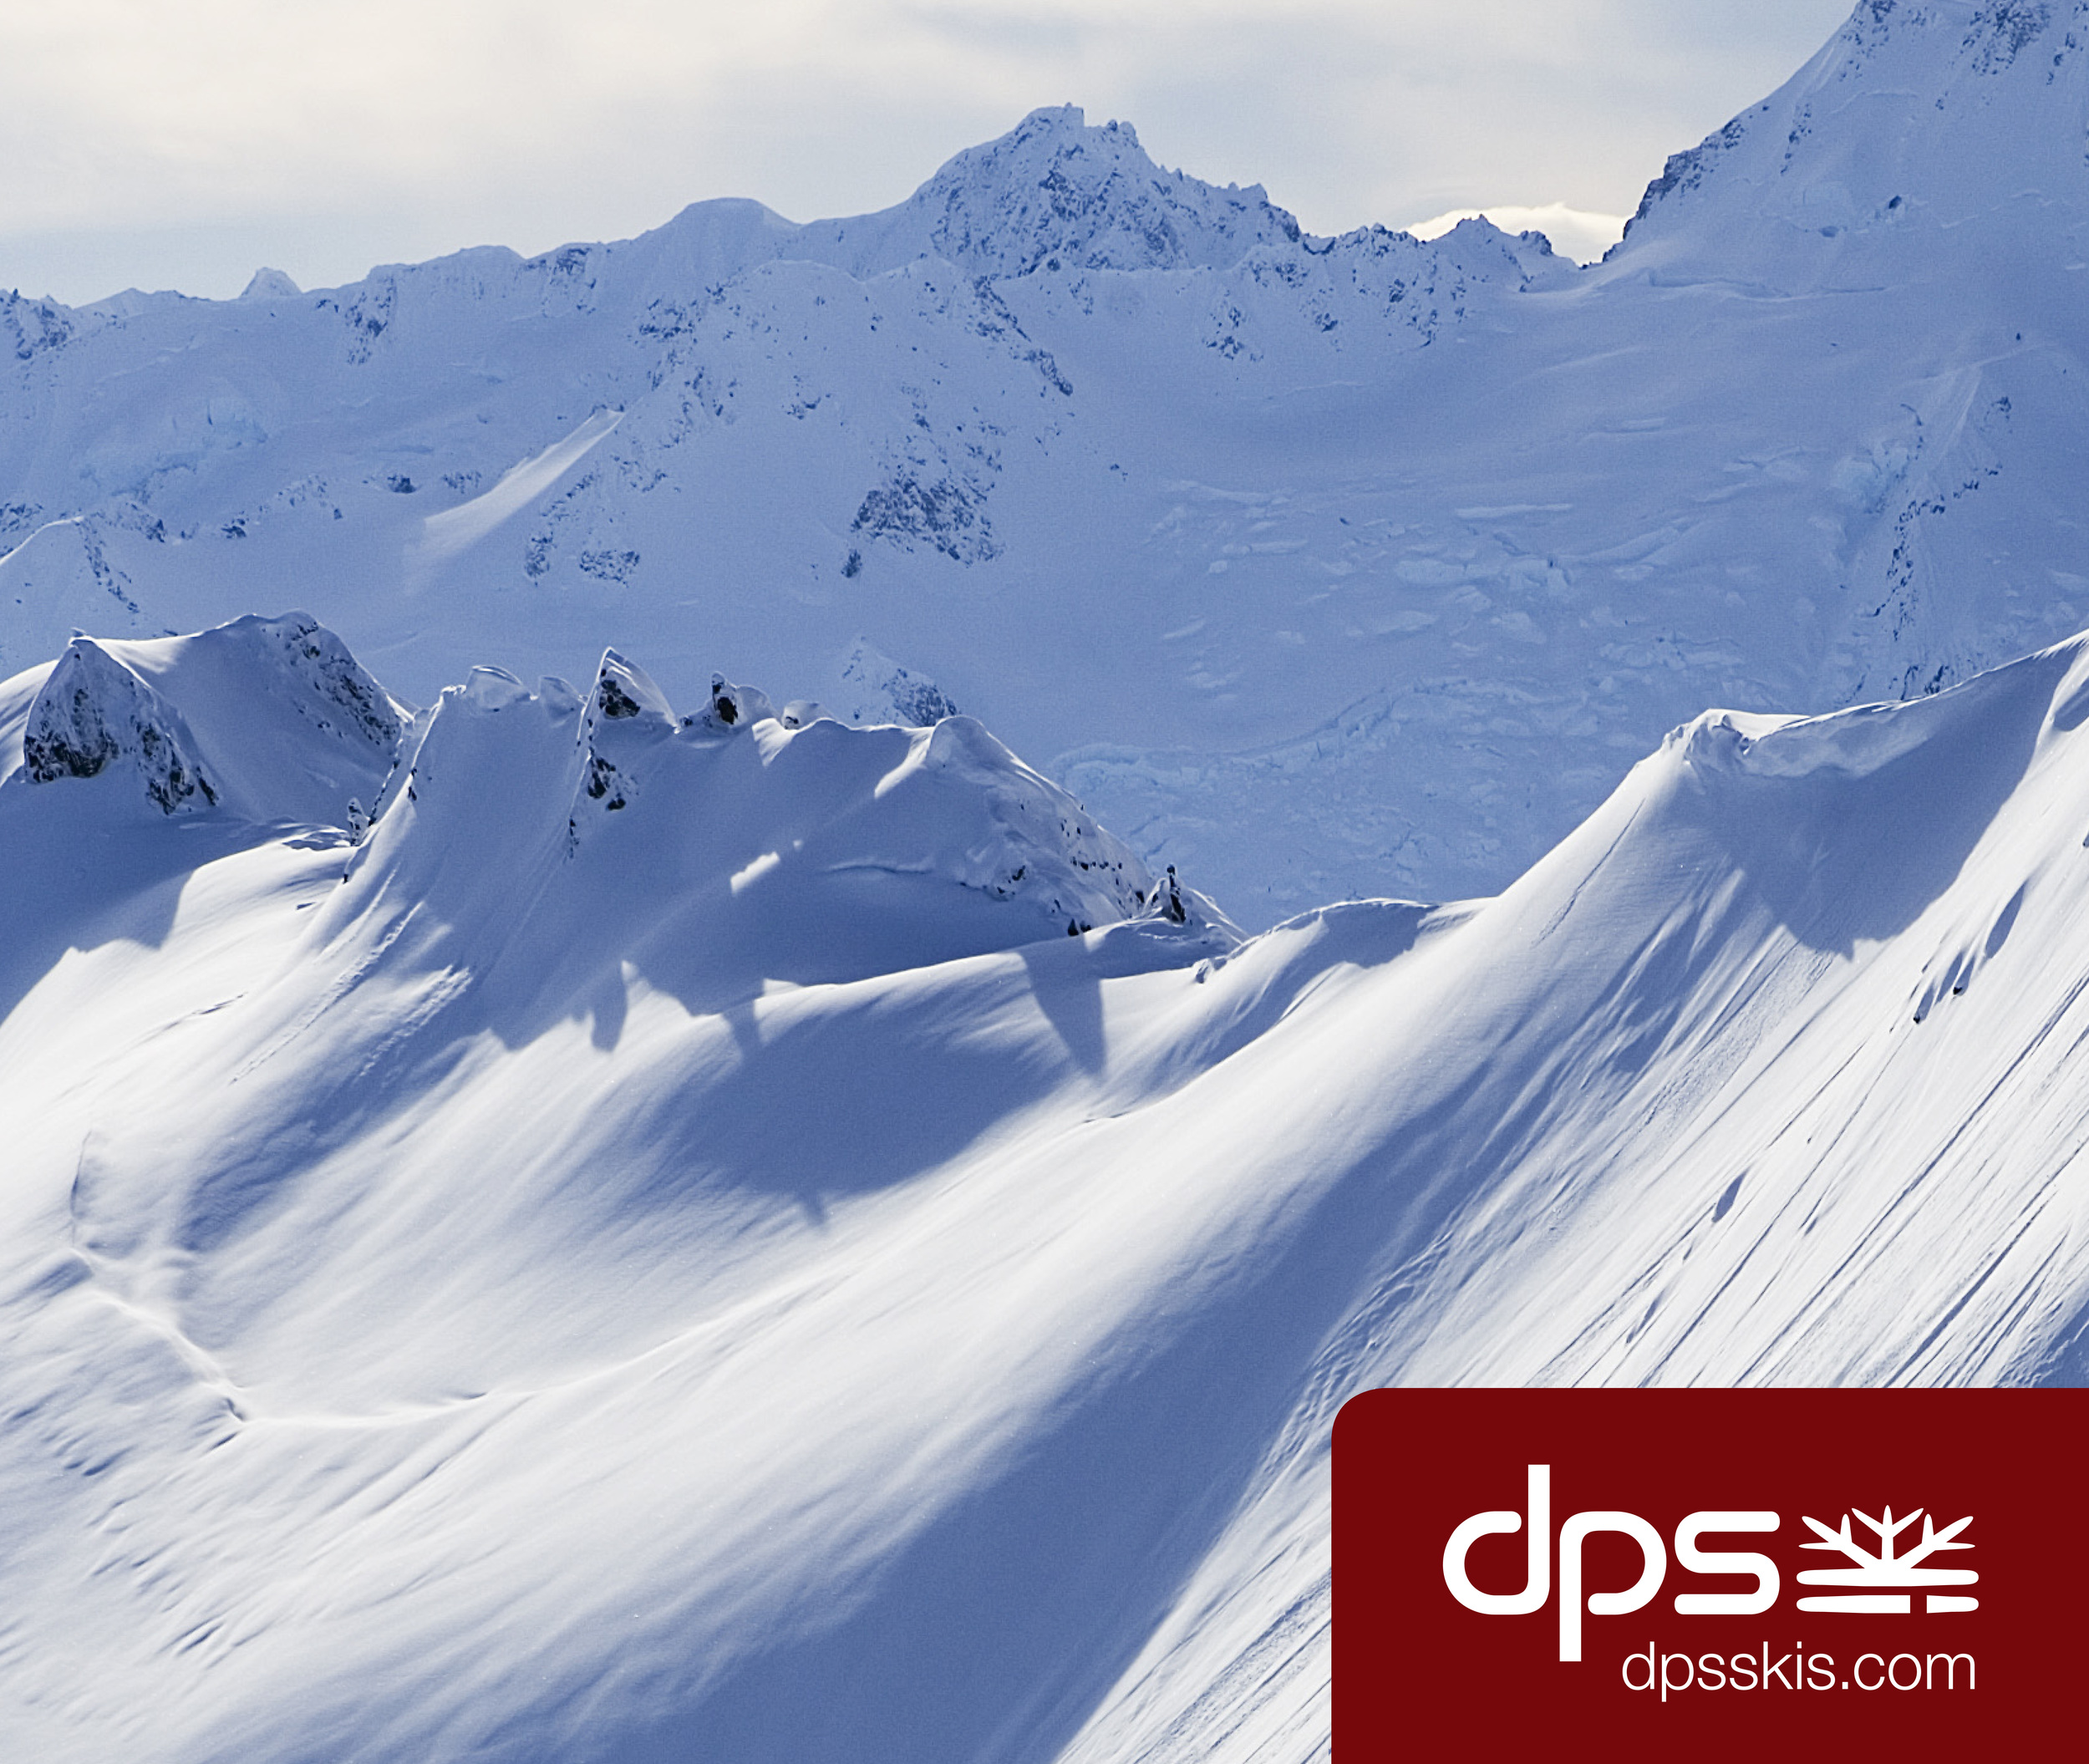 DPS SKIS AND DESIGNS